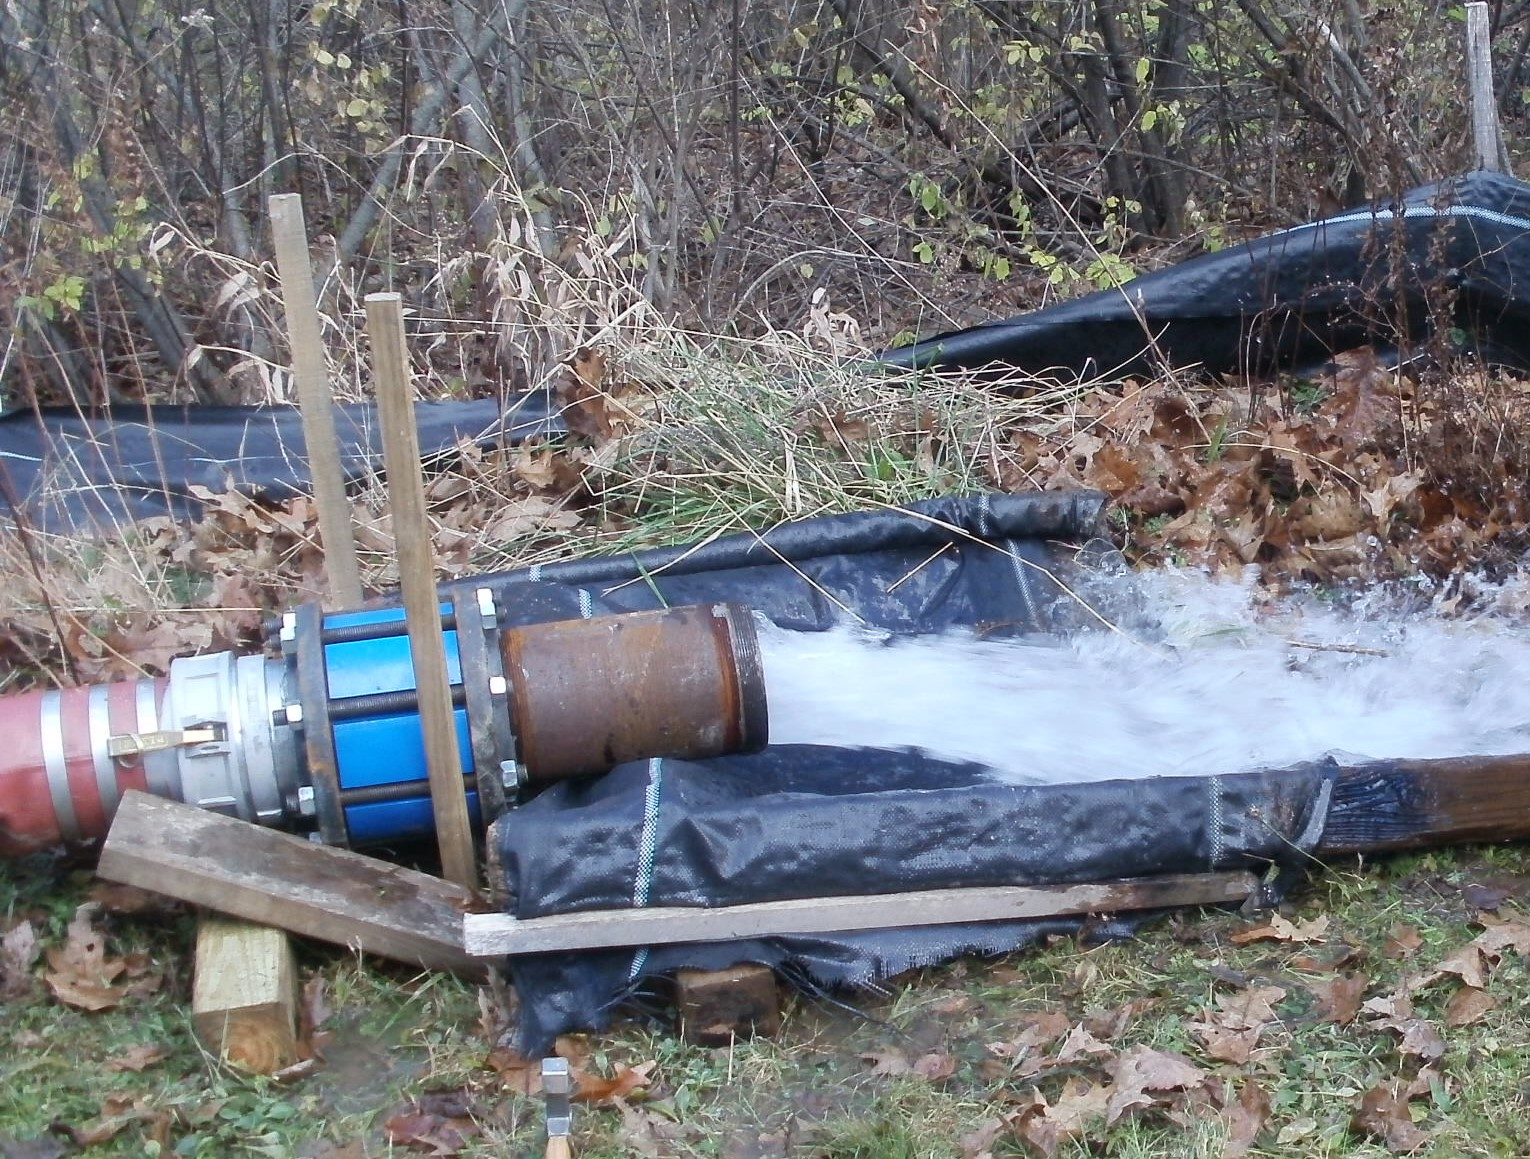 large diameter pipe on the ground with water gushing out of it